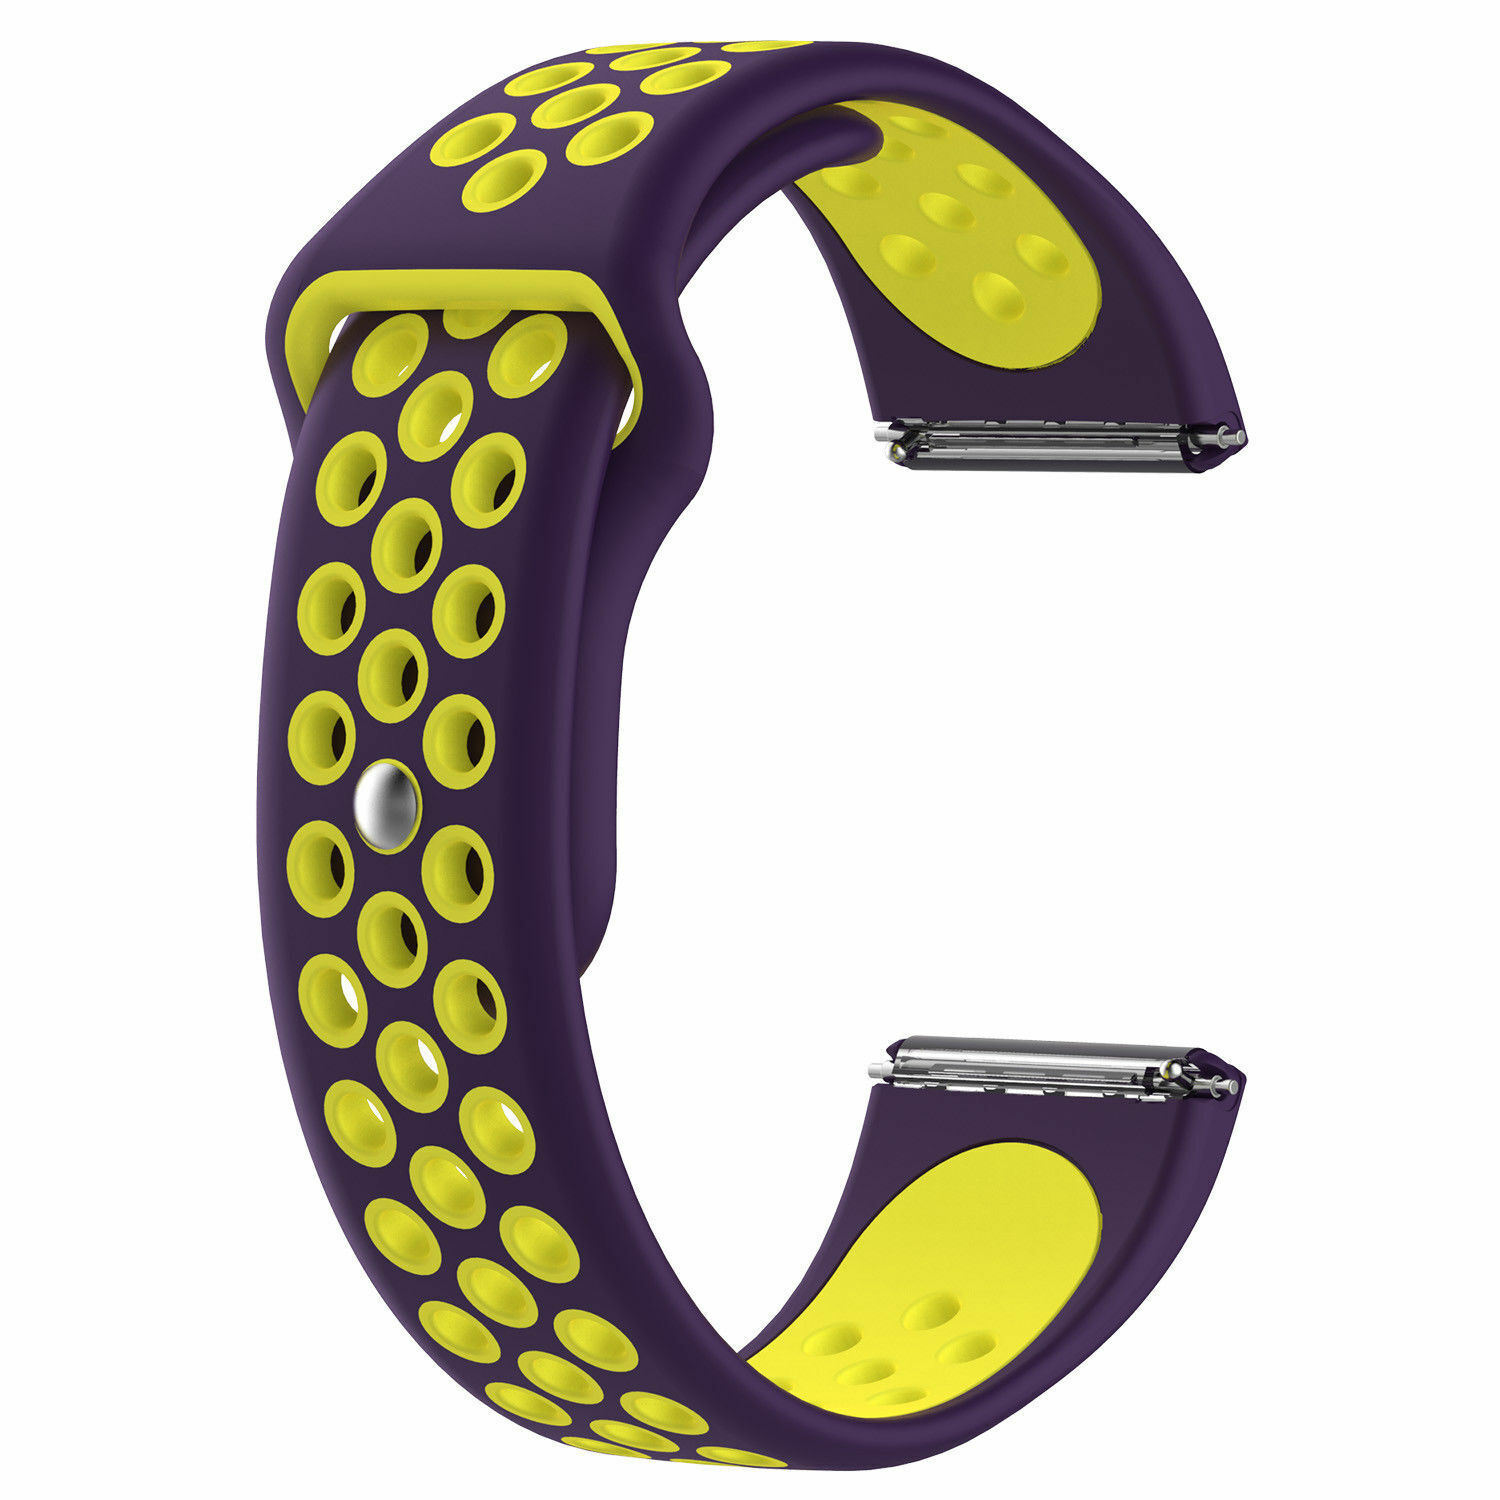 Sport Silicon Replacement Wristband Strap Breathable Watch Band For Fitbit Versa 1